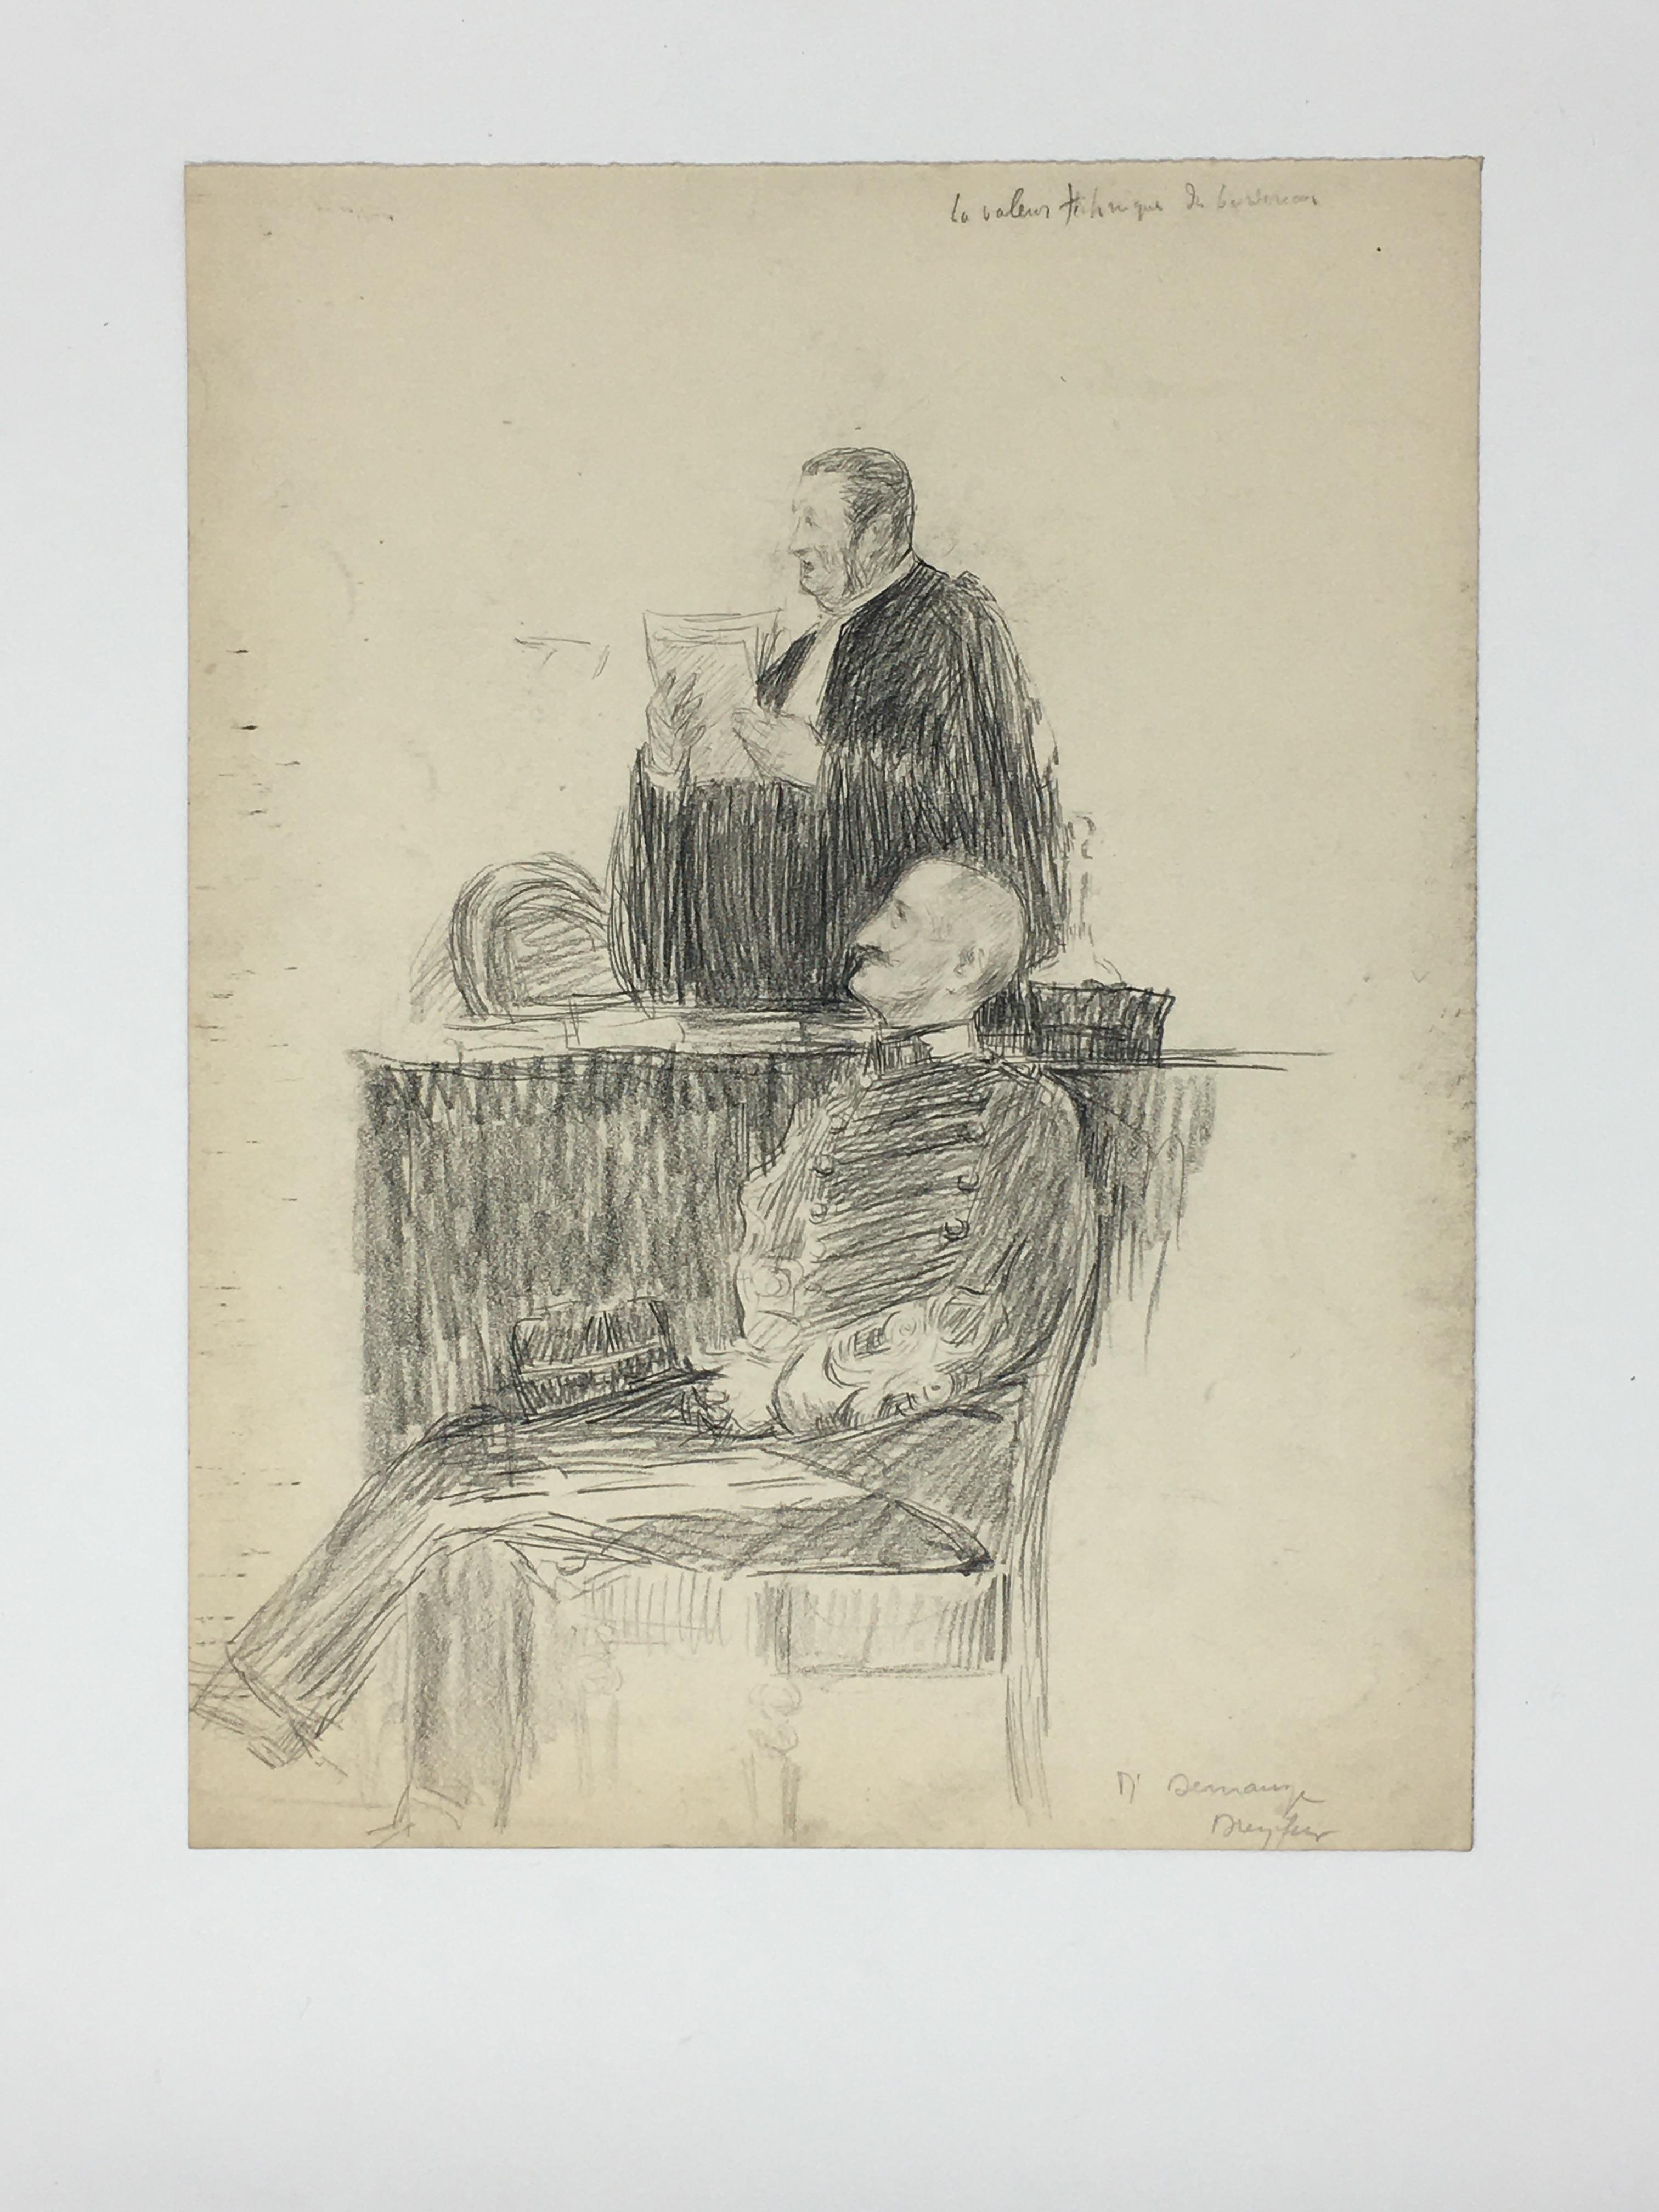 J'Accuse Newspaper, Emile Zola Quote, Signed Dreyfus Portrait, Rare Trial Drawings & Schwartzkoppen - Image 19 of 74